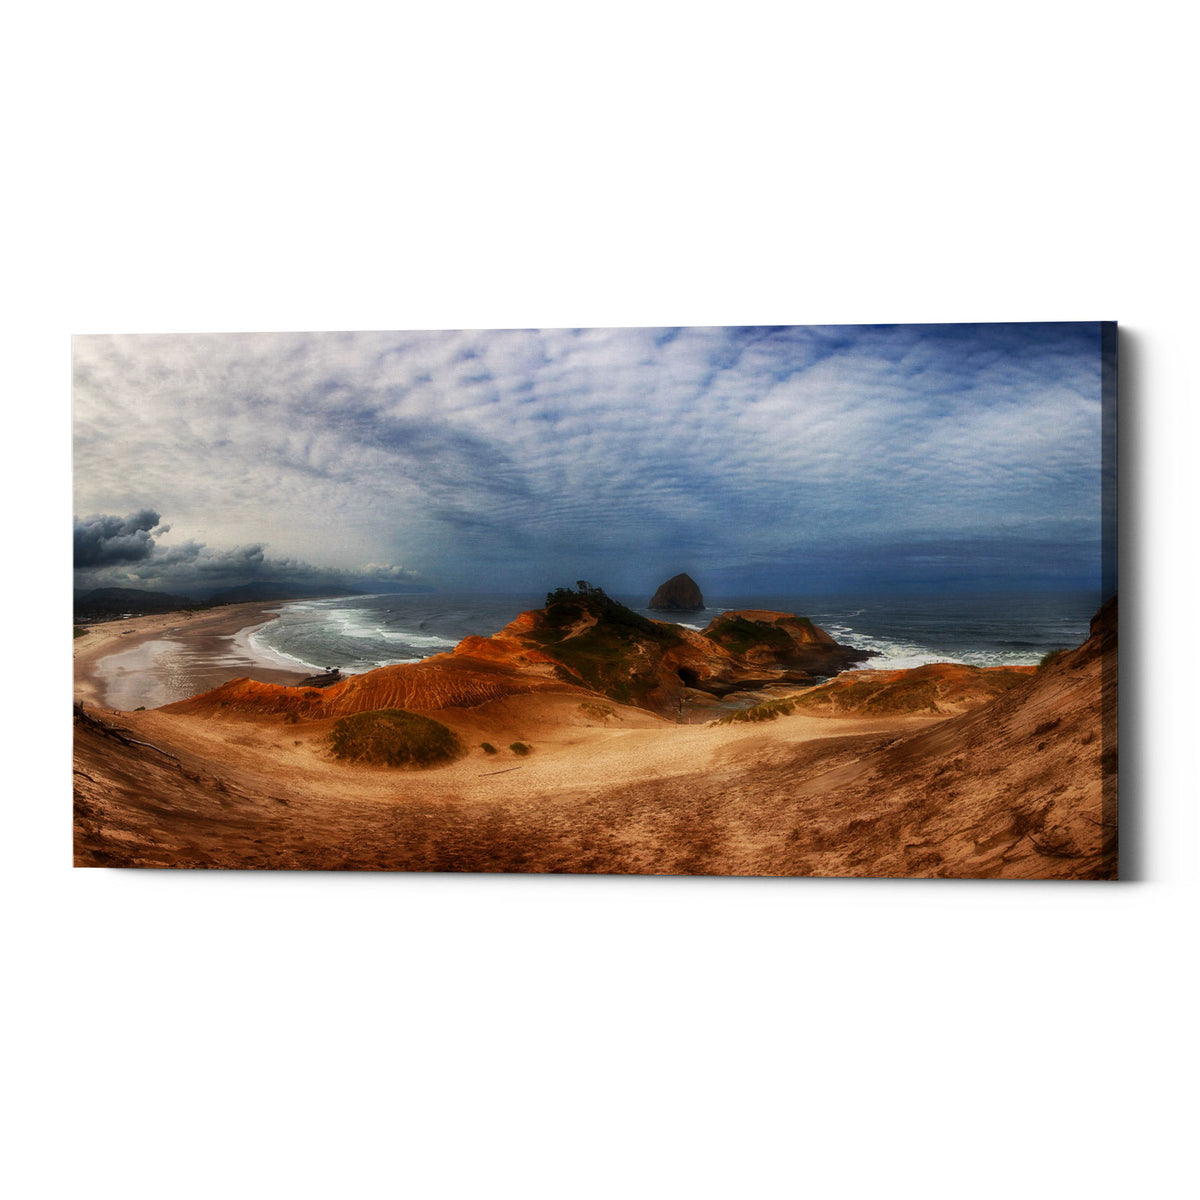 "Epic Graffiti ""Kiwanda"" by Darren White, Giclee Canvas Wall Art"